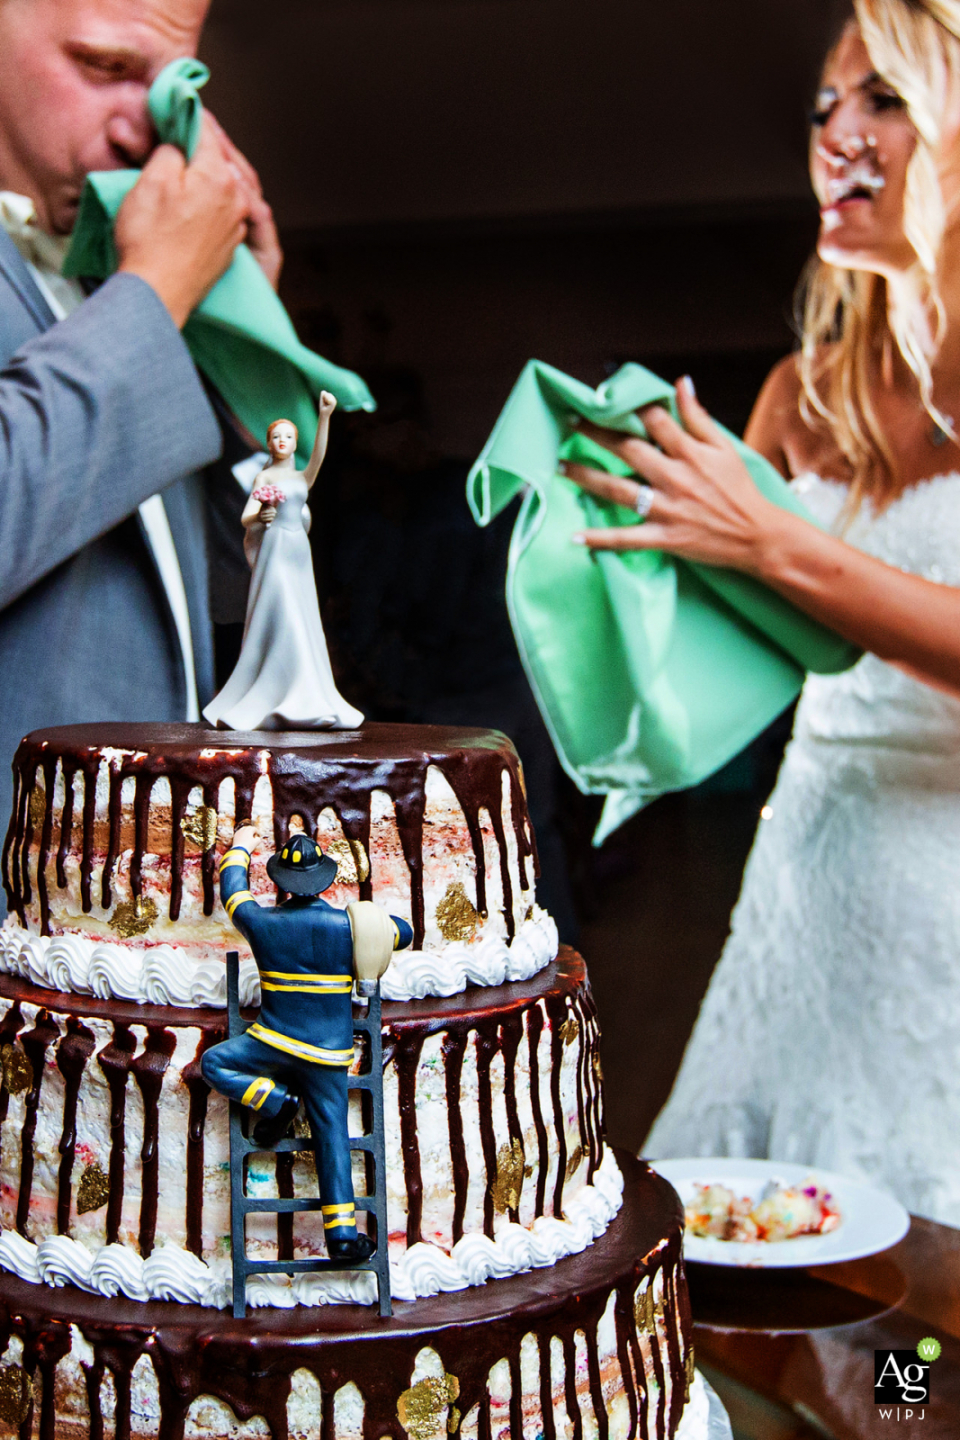 Rock Island Lake Club New Jersey wedding venue photo detail of the fireman cake cutting with the bride and groom wiping cake off their faces